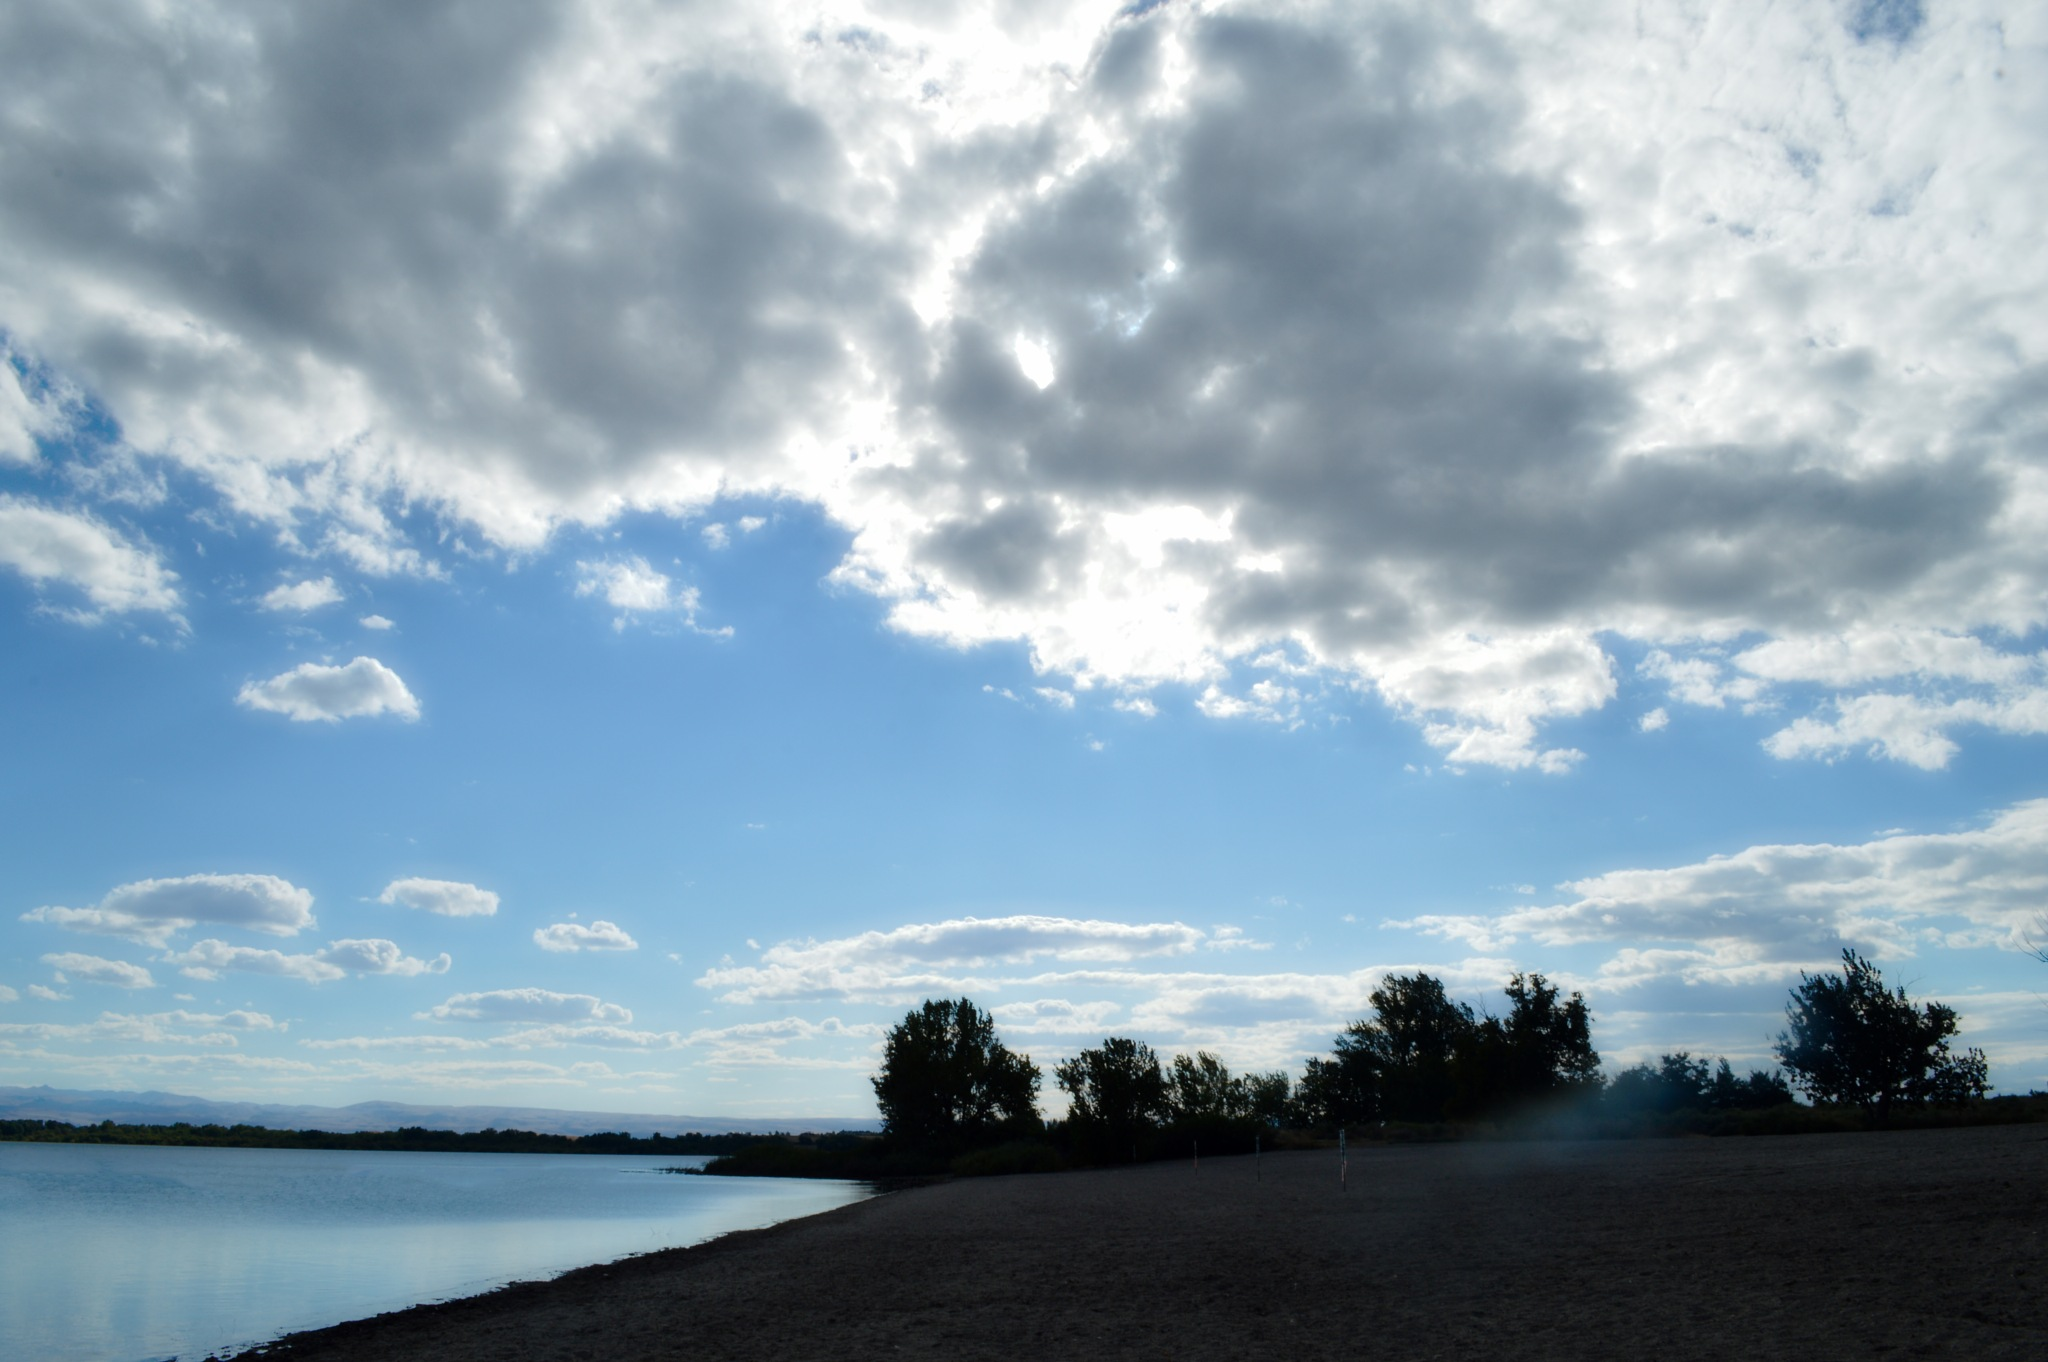 Water and Sky by shellee